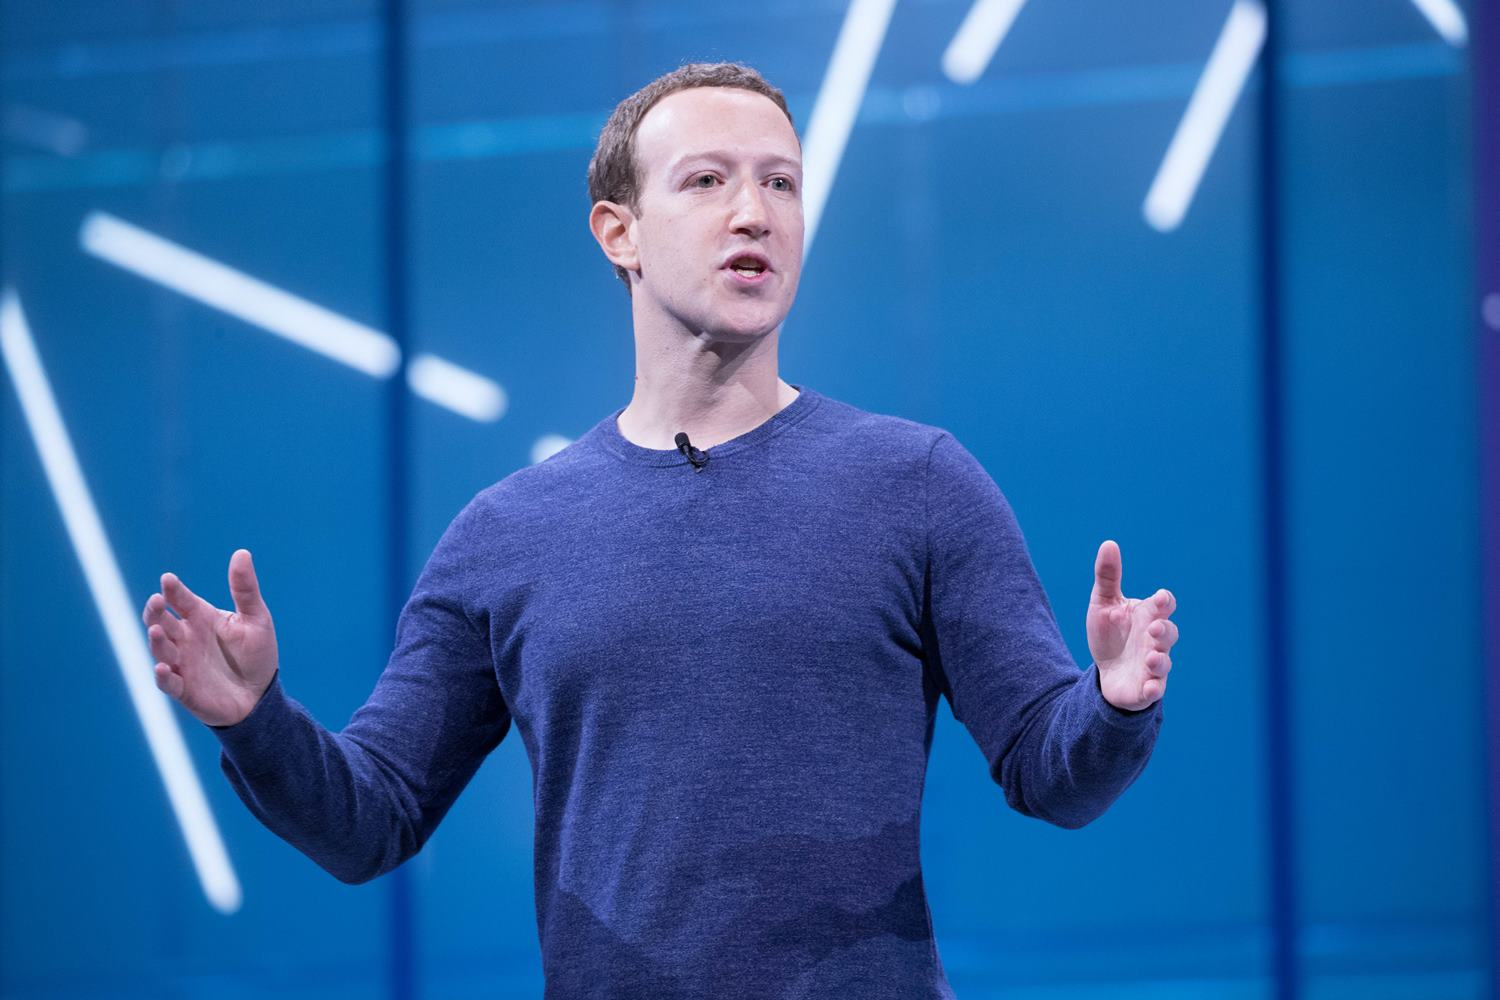 Facebook properties saw content consumption slide 7% in September, analysis finds